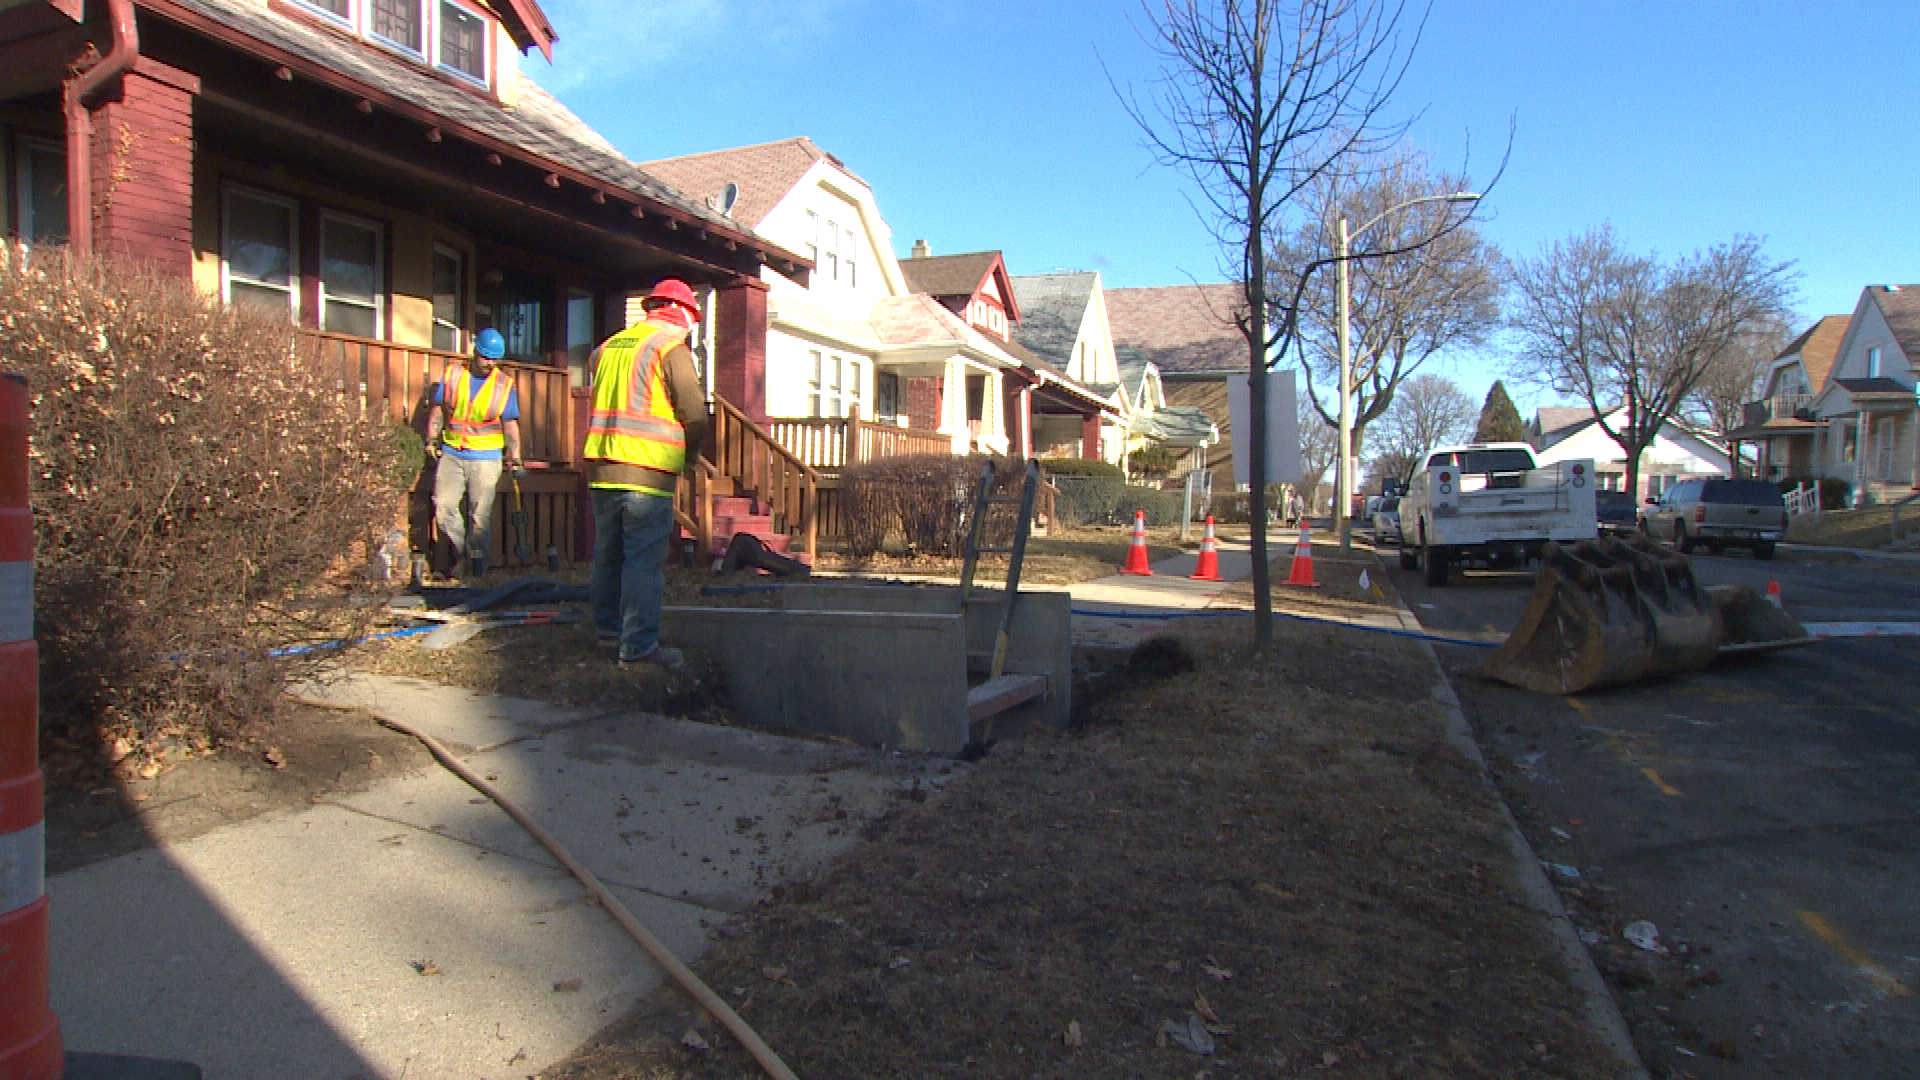 Groups continue to accuse city of obscuring truth about lead